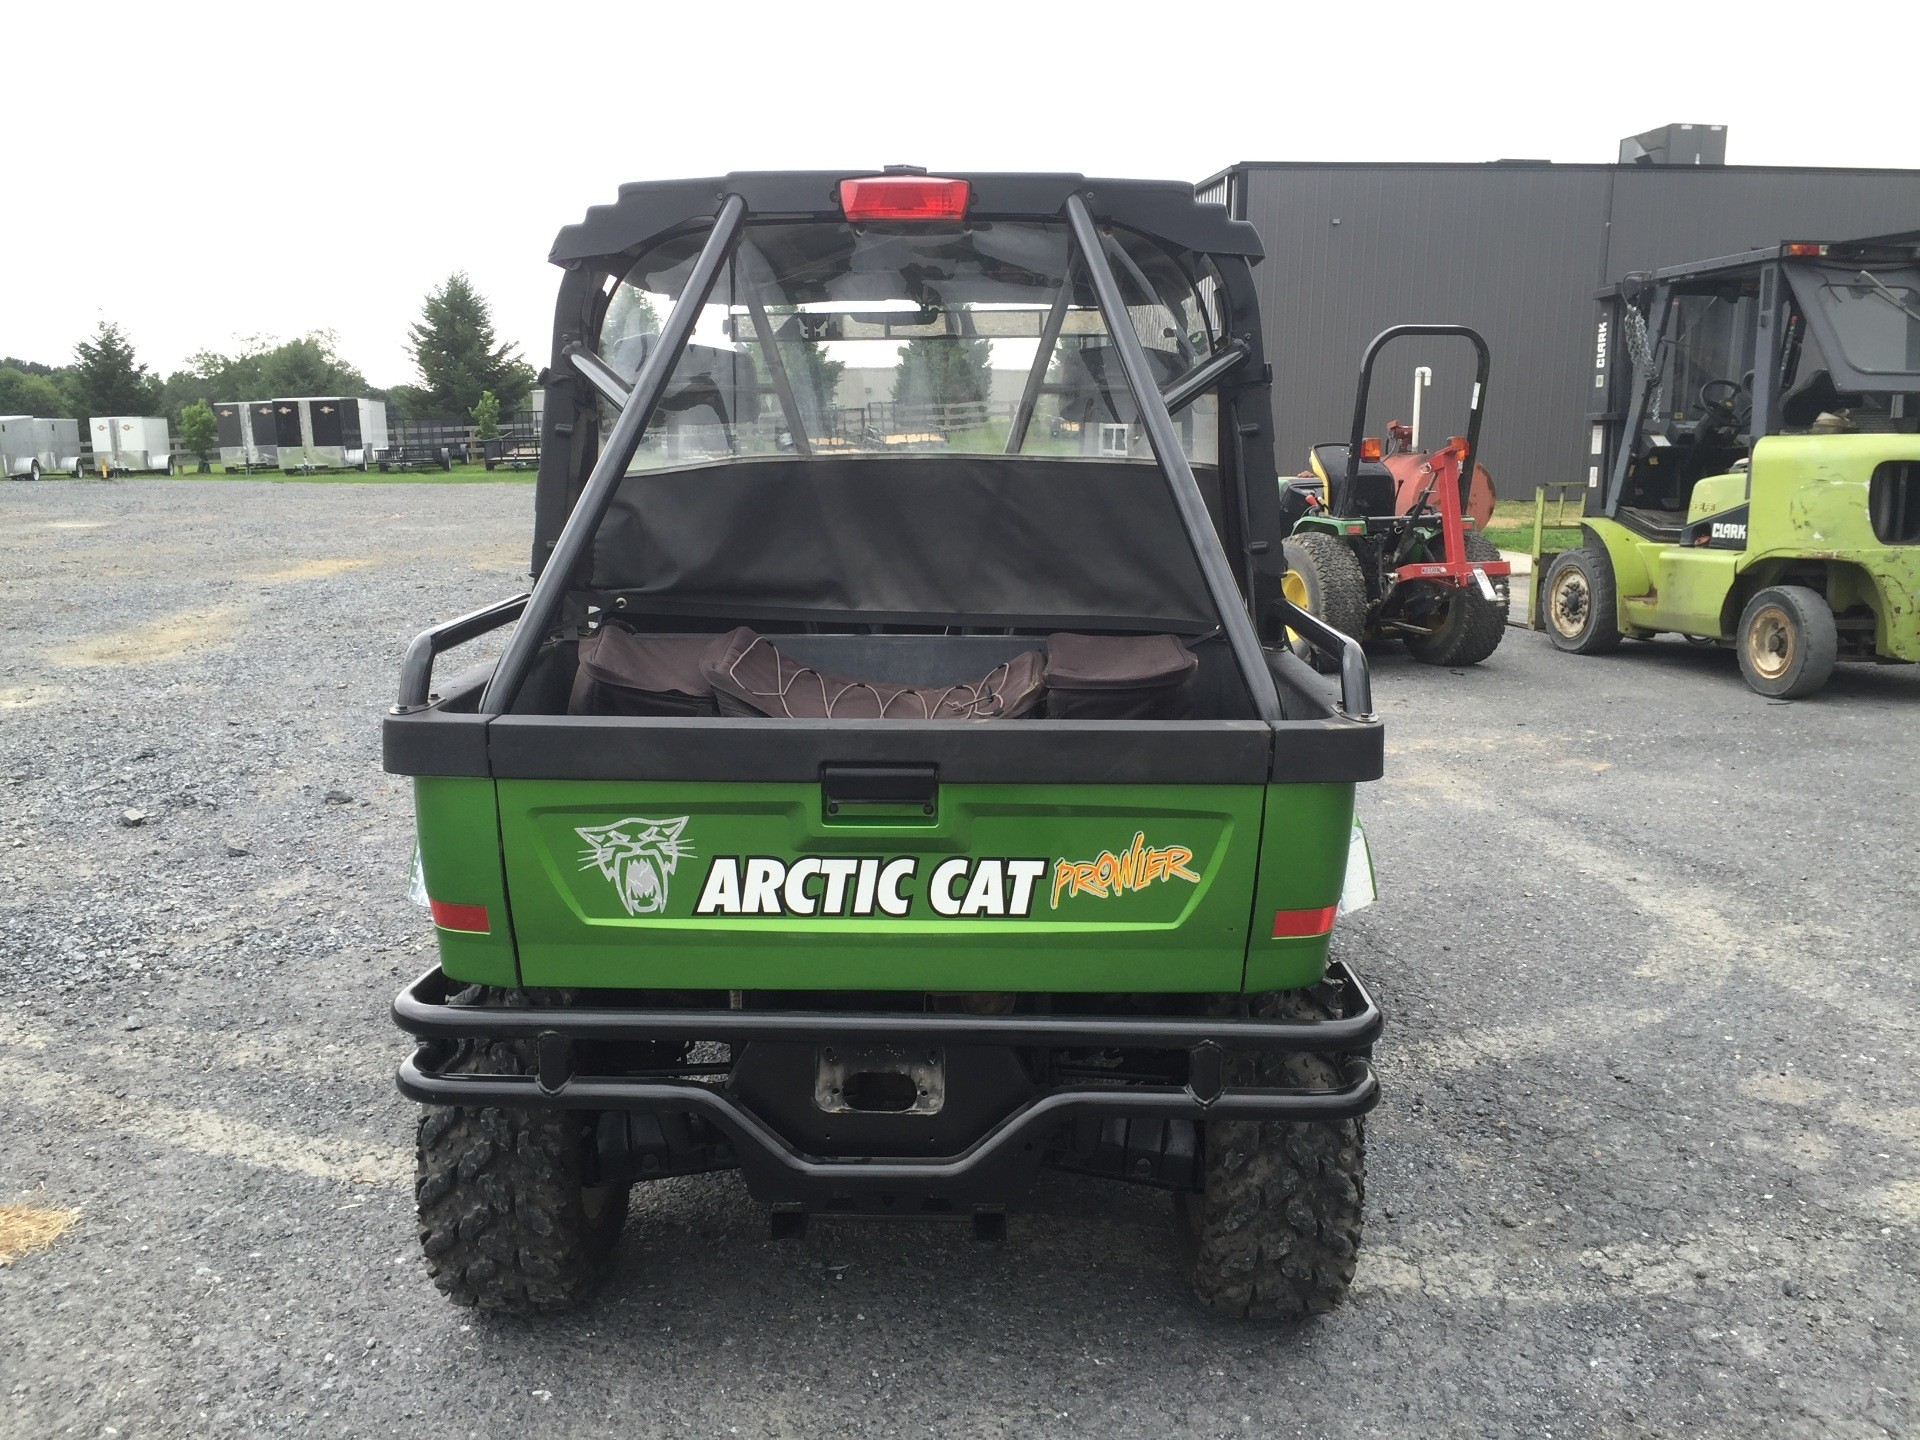 2009 Arctic Cat Prowler 1000 For Sale Grantville, PA : 547087